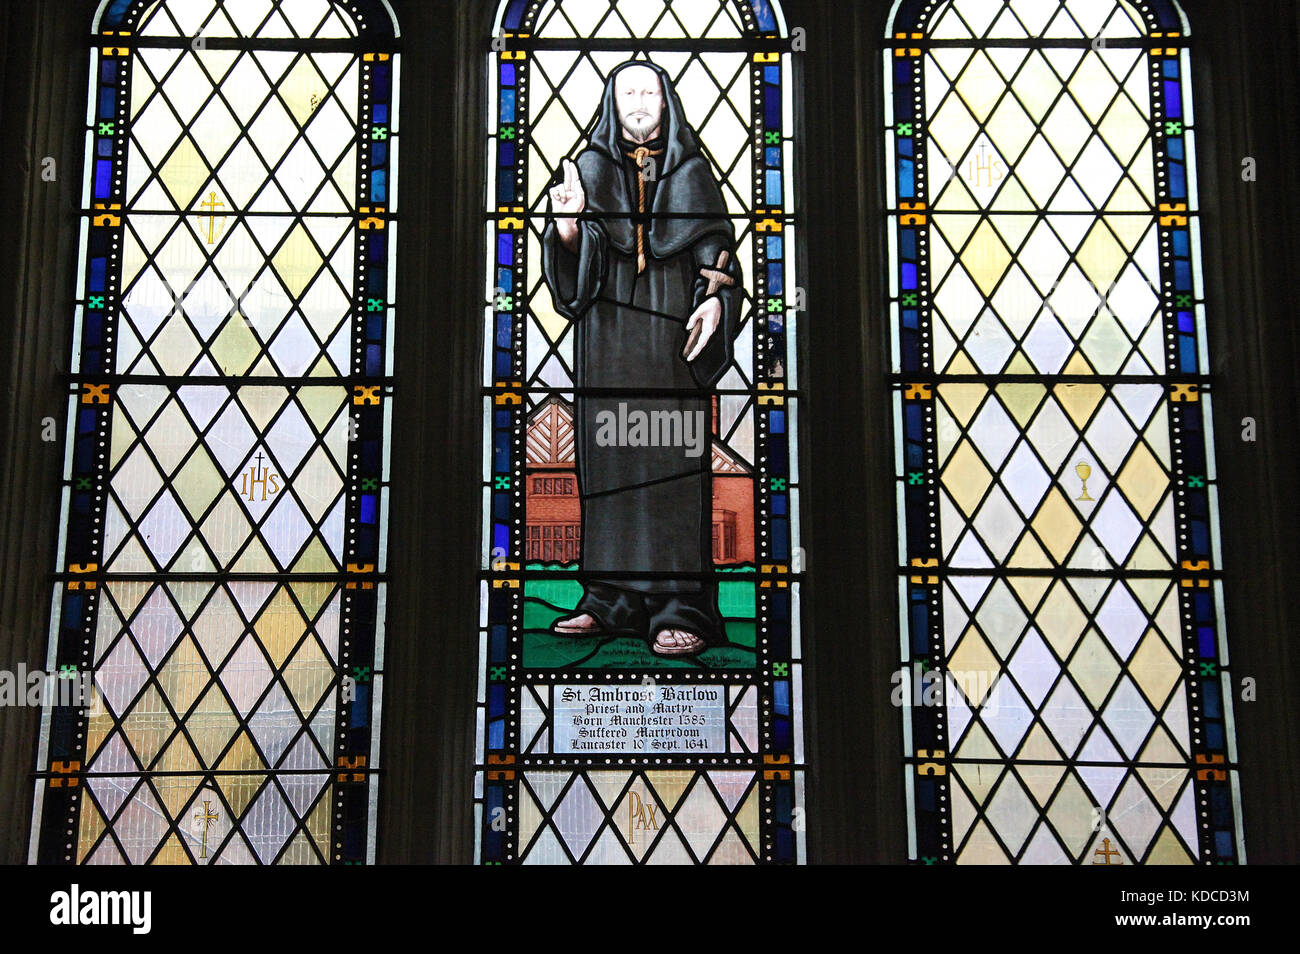 St Ambrose Barlow Window at Salford Cathedral - Stock Image